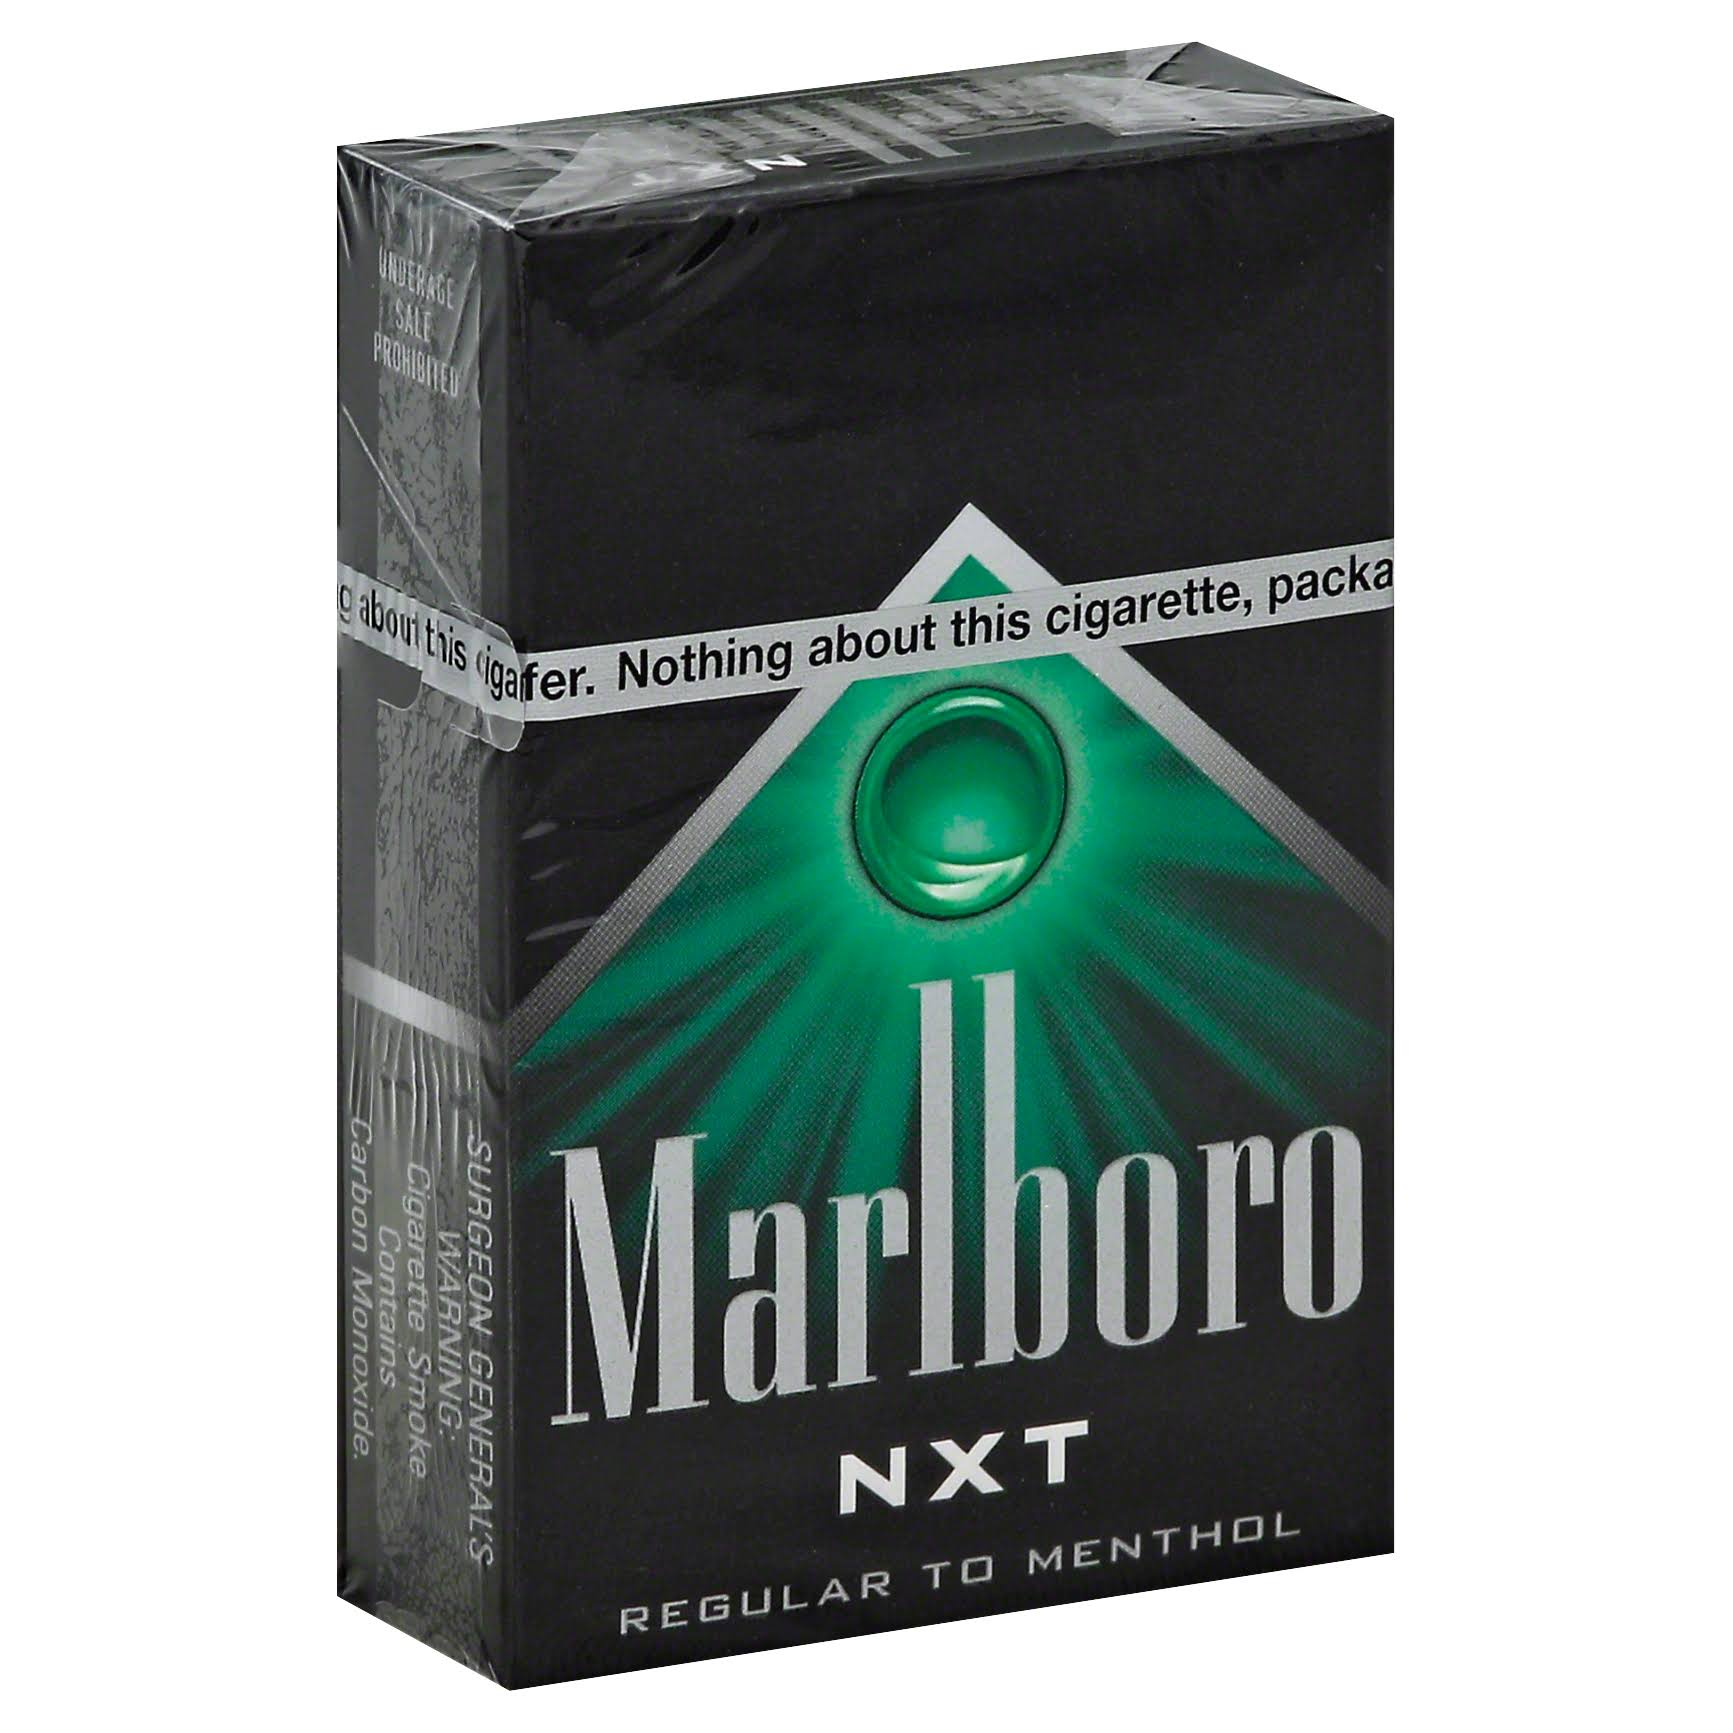 Marlboro Cigarettes, NXT, Regular to Menthol - 20 cigarettes